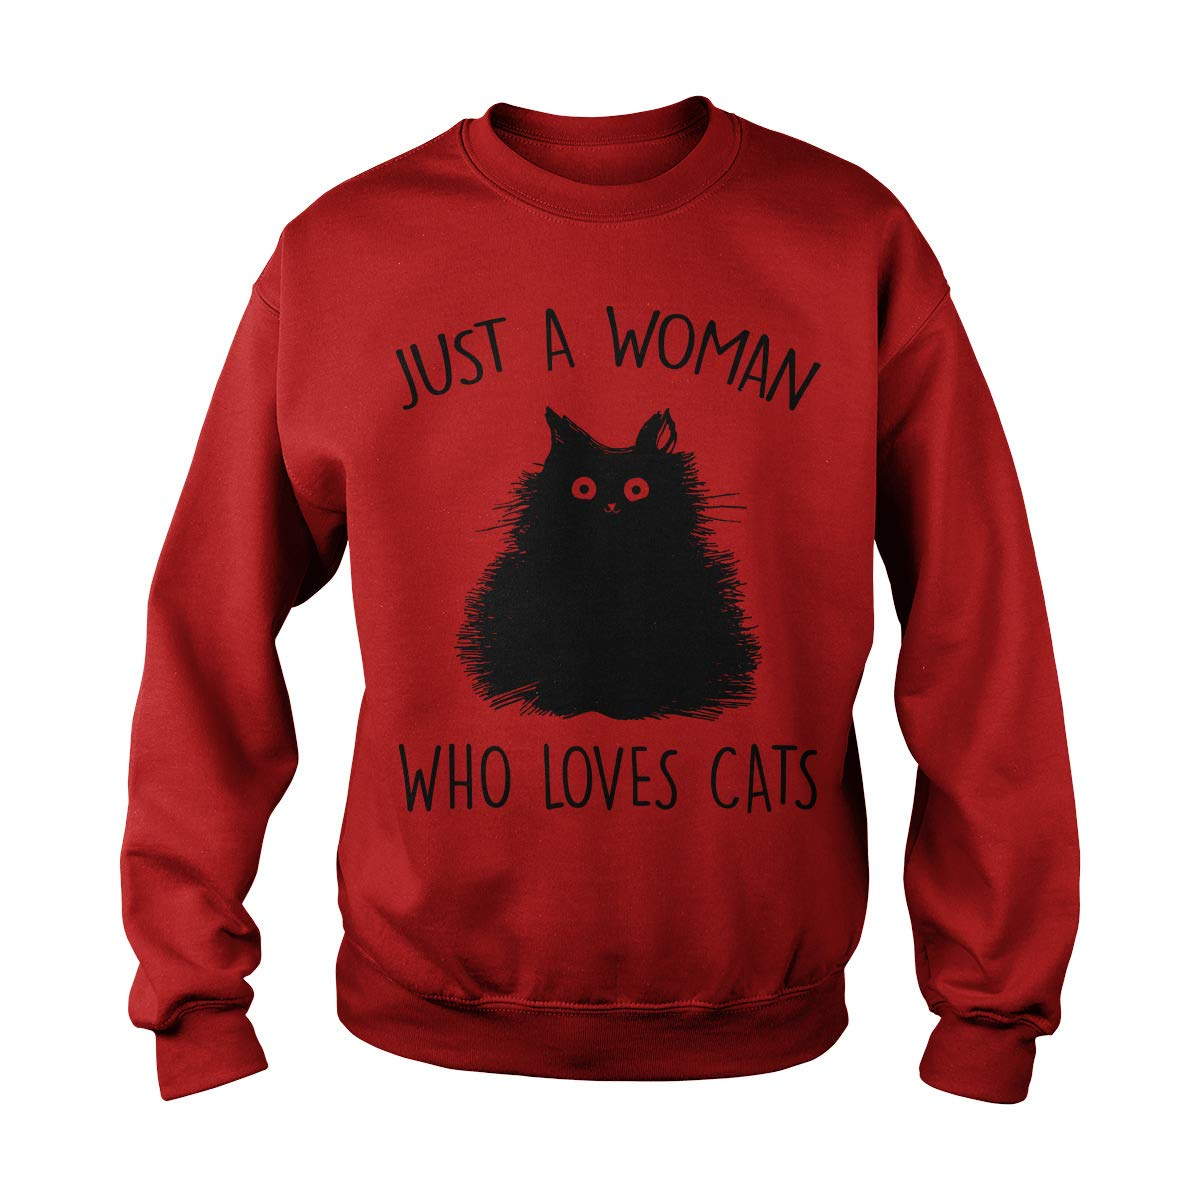 Just A Woman Who Loves Cats Adult Crewneck Sweatshirt